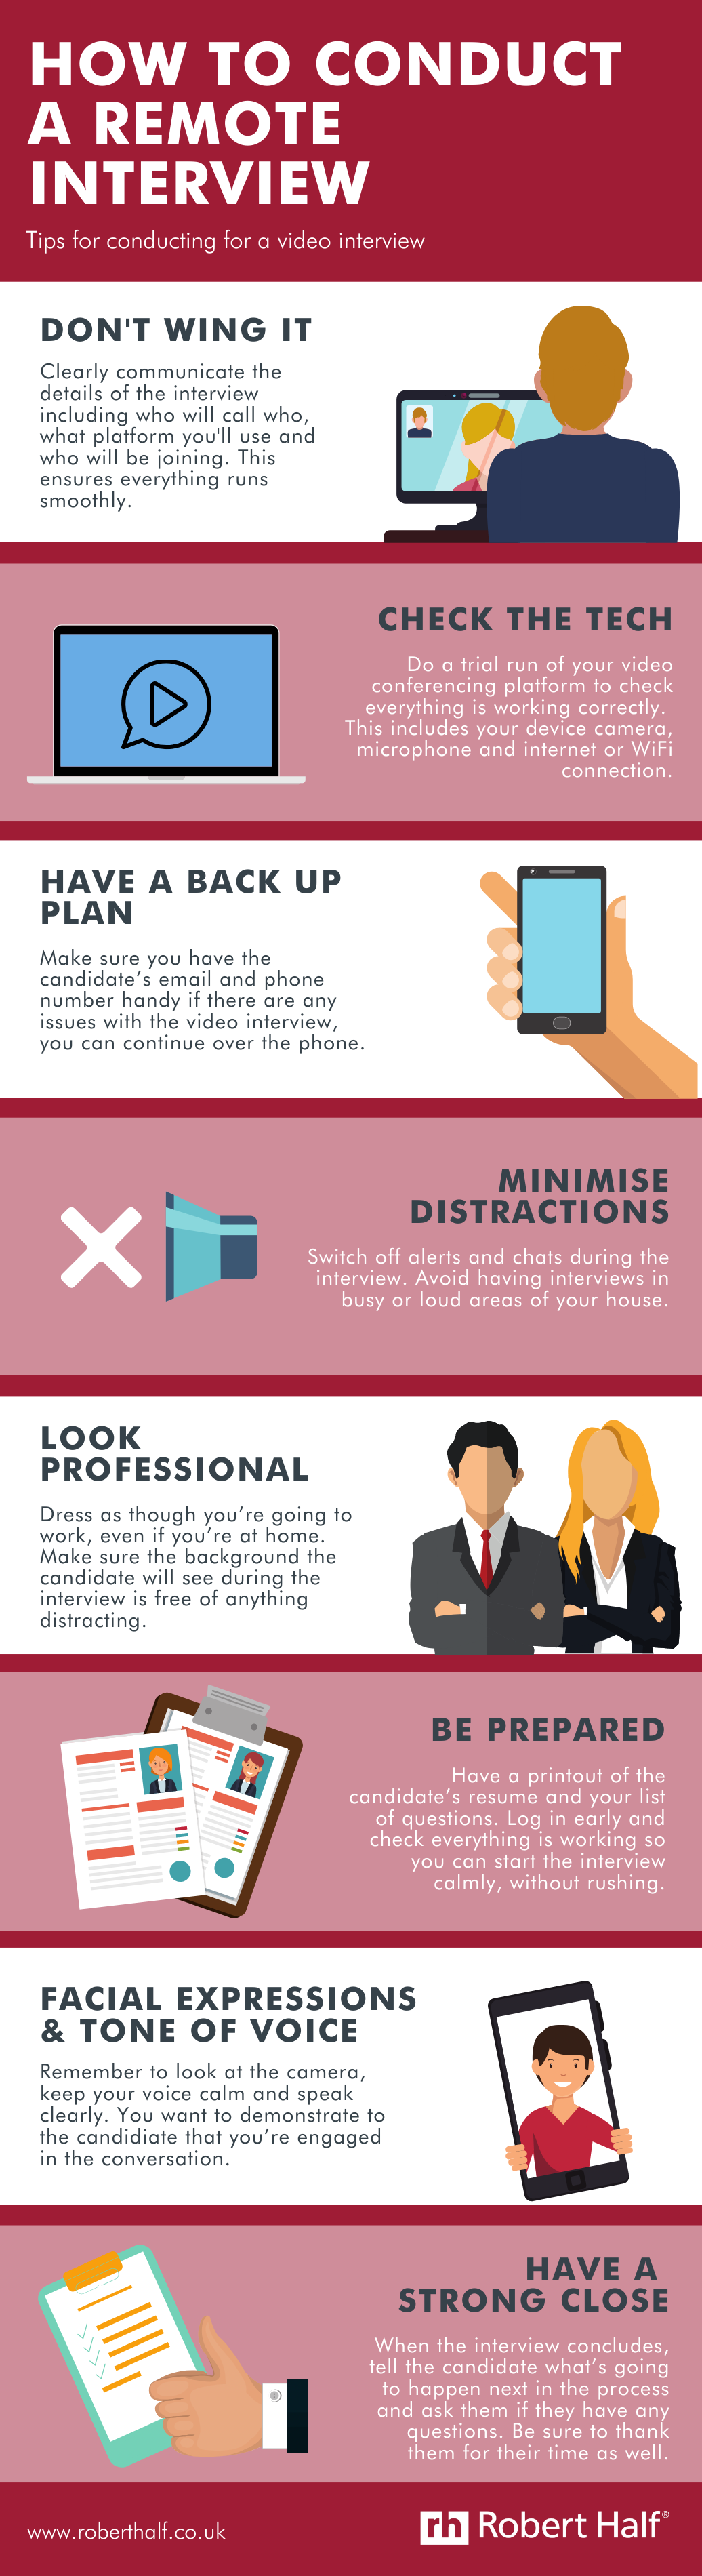 Remote interview infographic